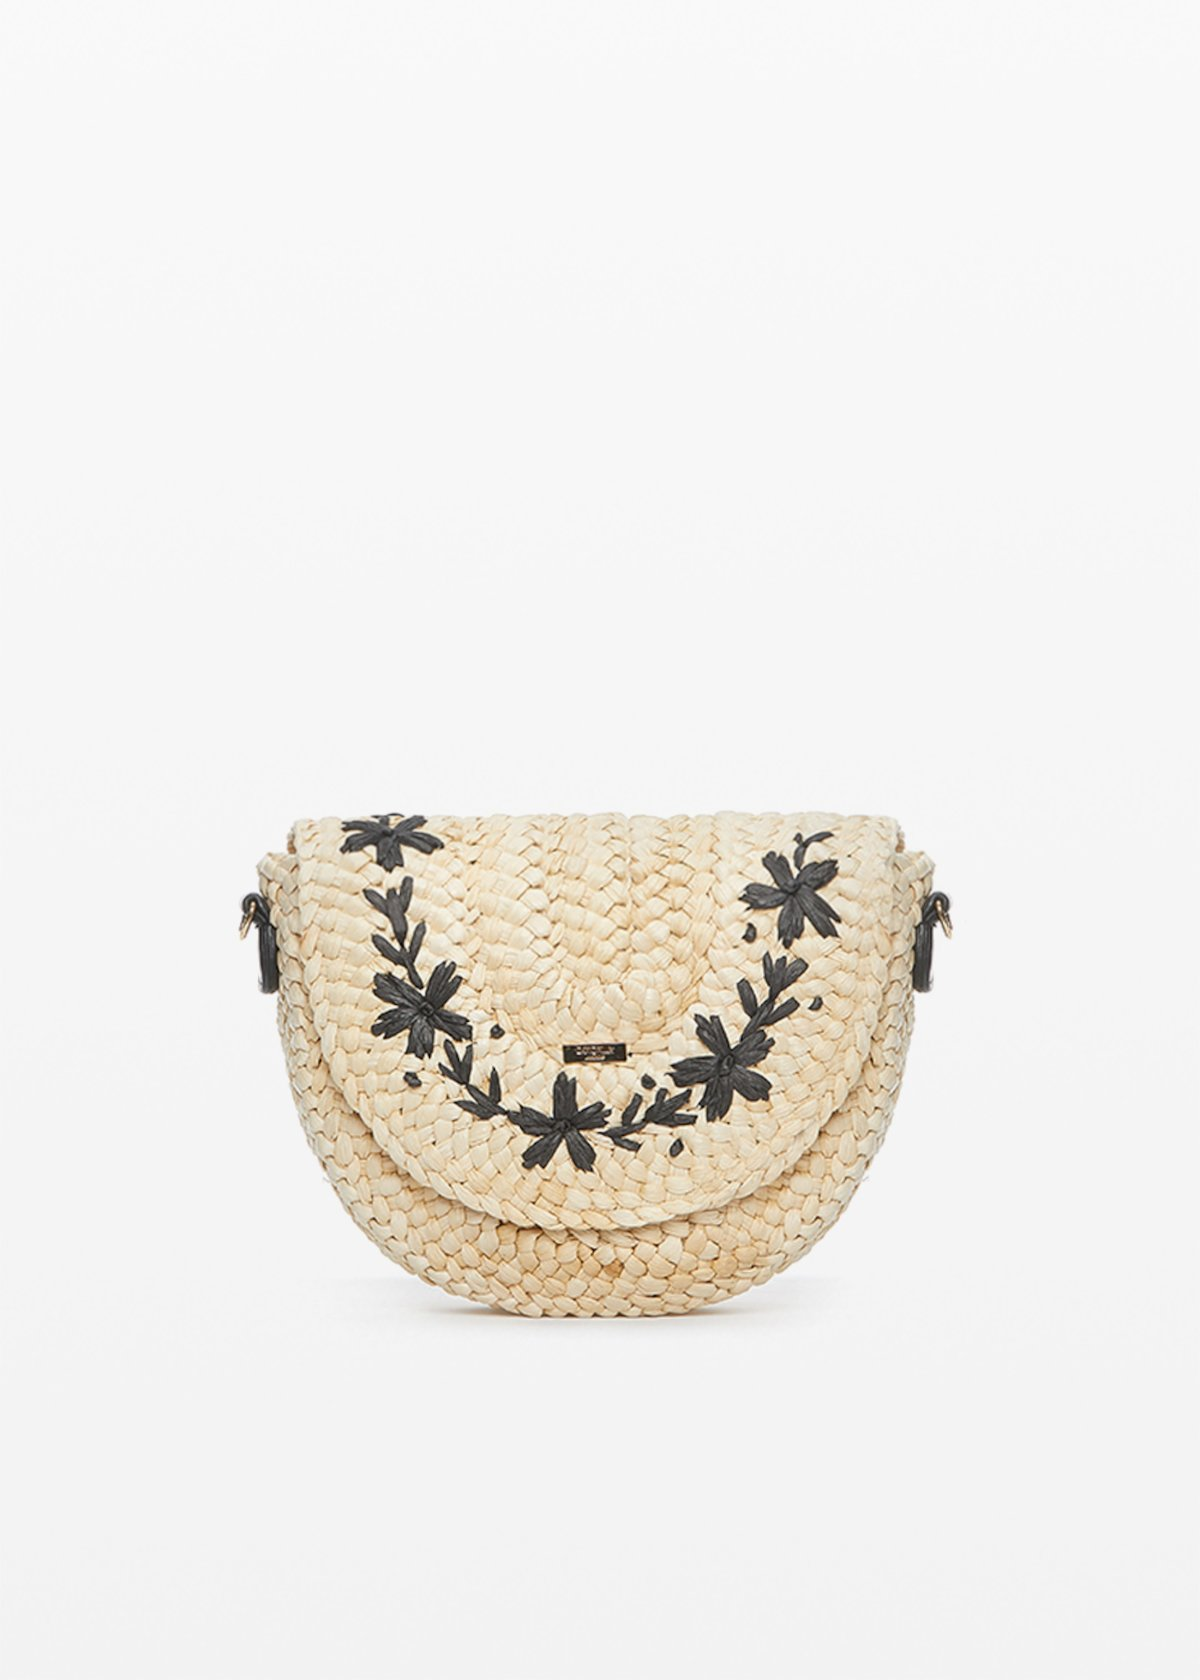 Bjork shoulder bag in straw with flower embroidery on the front - Light Beige / Black - Woman